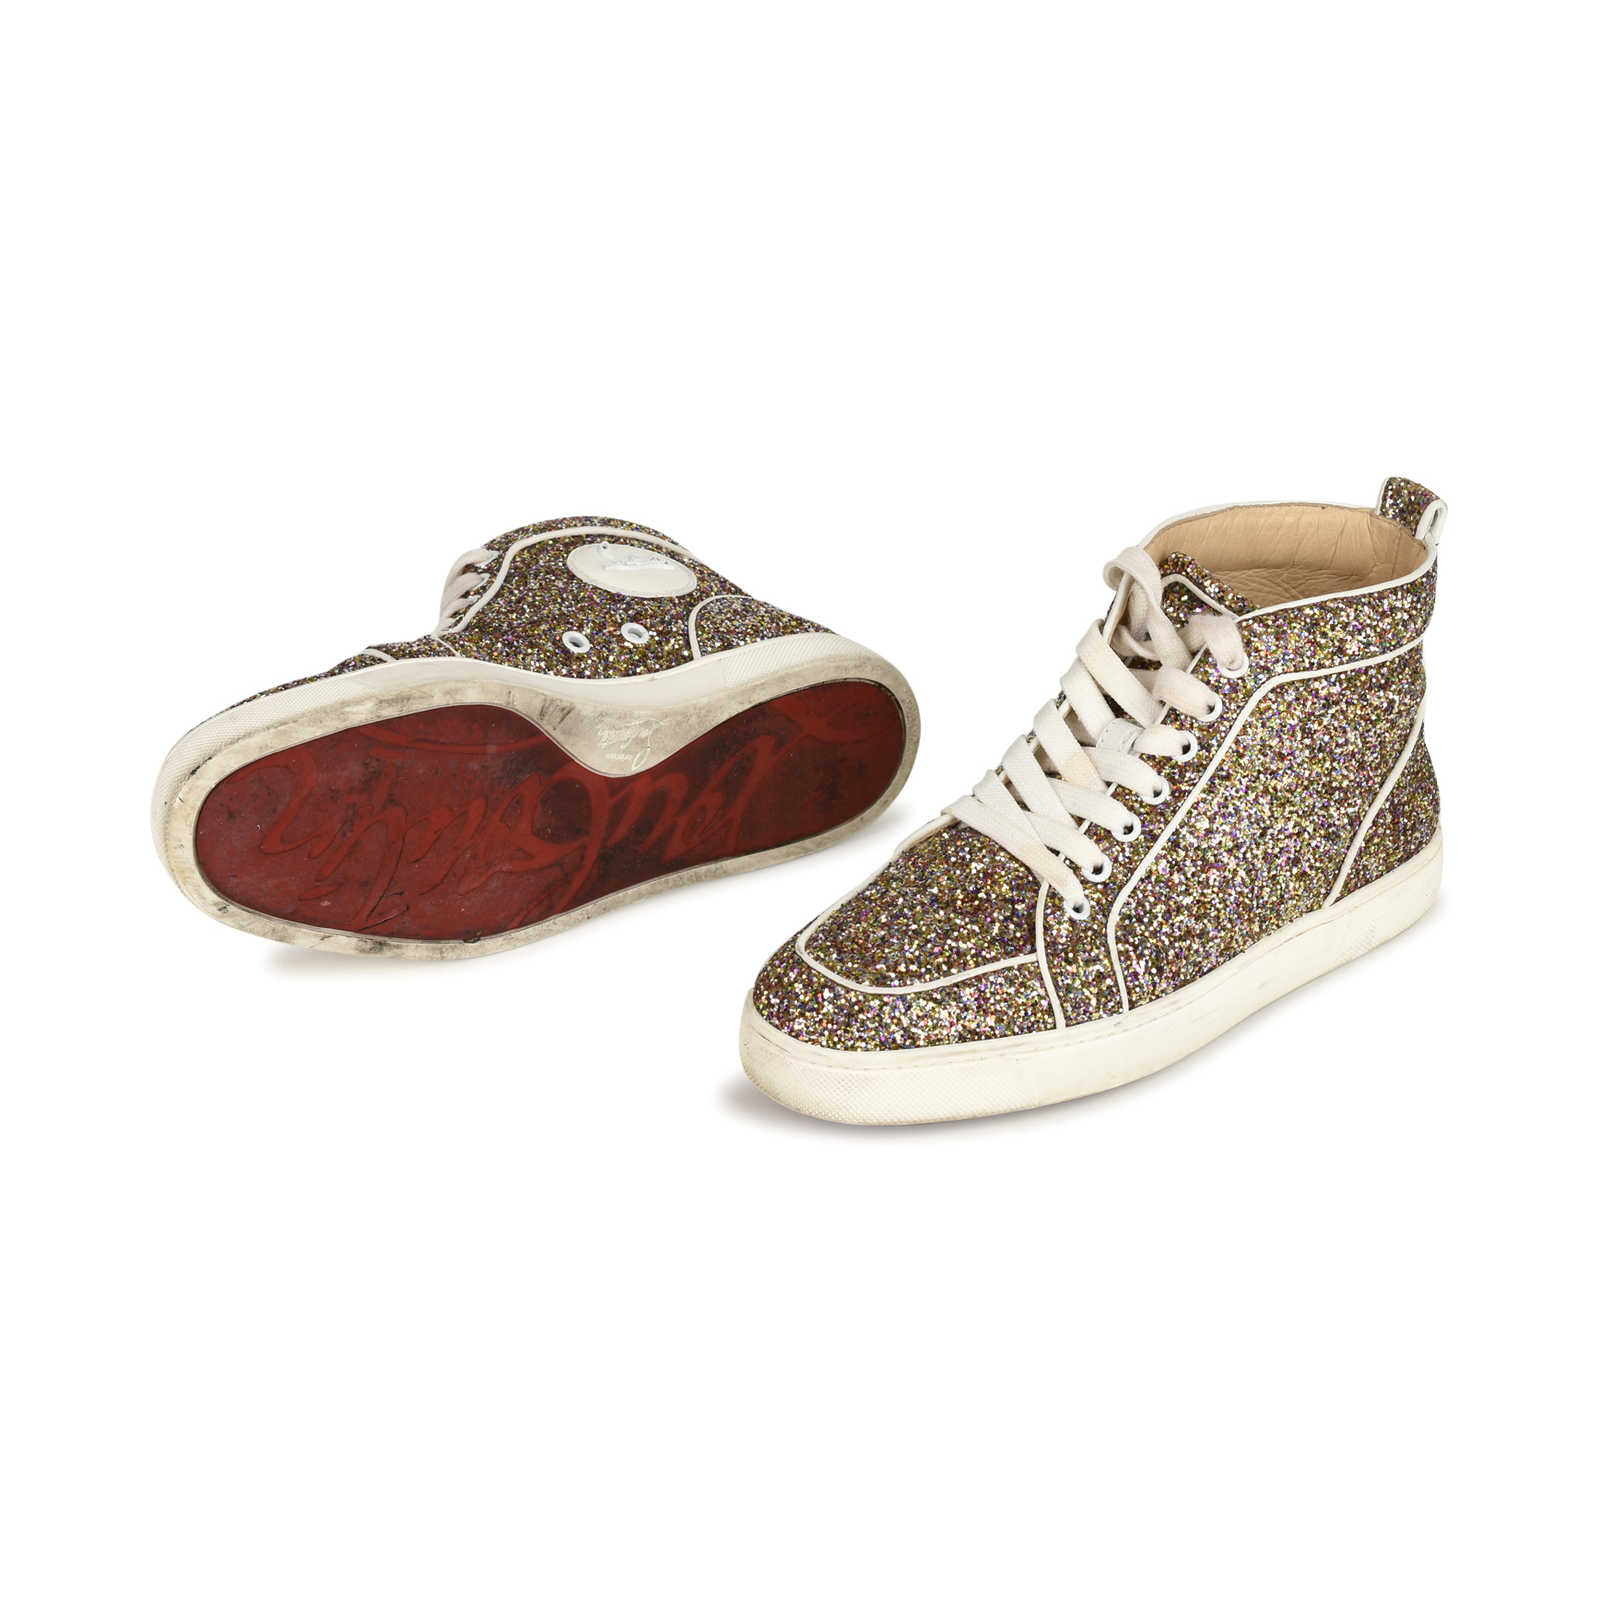 new products 2c931 5e2a6 Authentic Second Hand Christian Louboutin Rantus Orlato ...